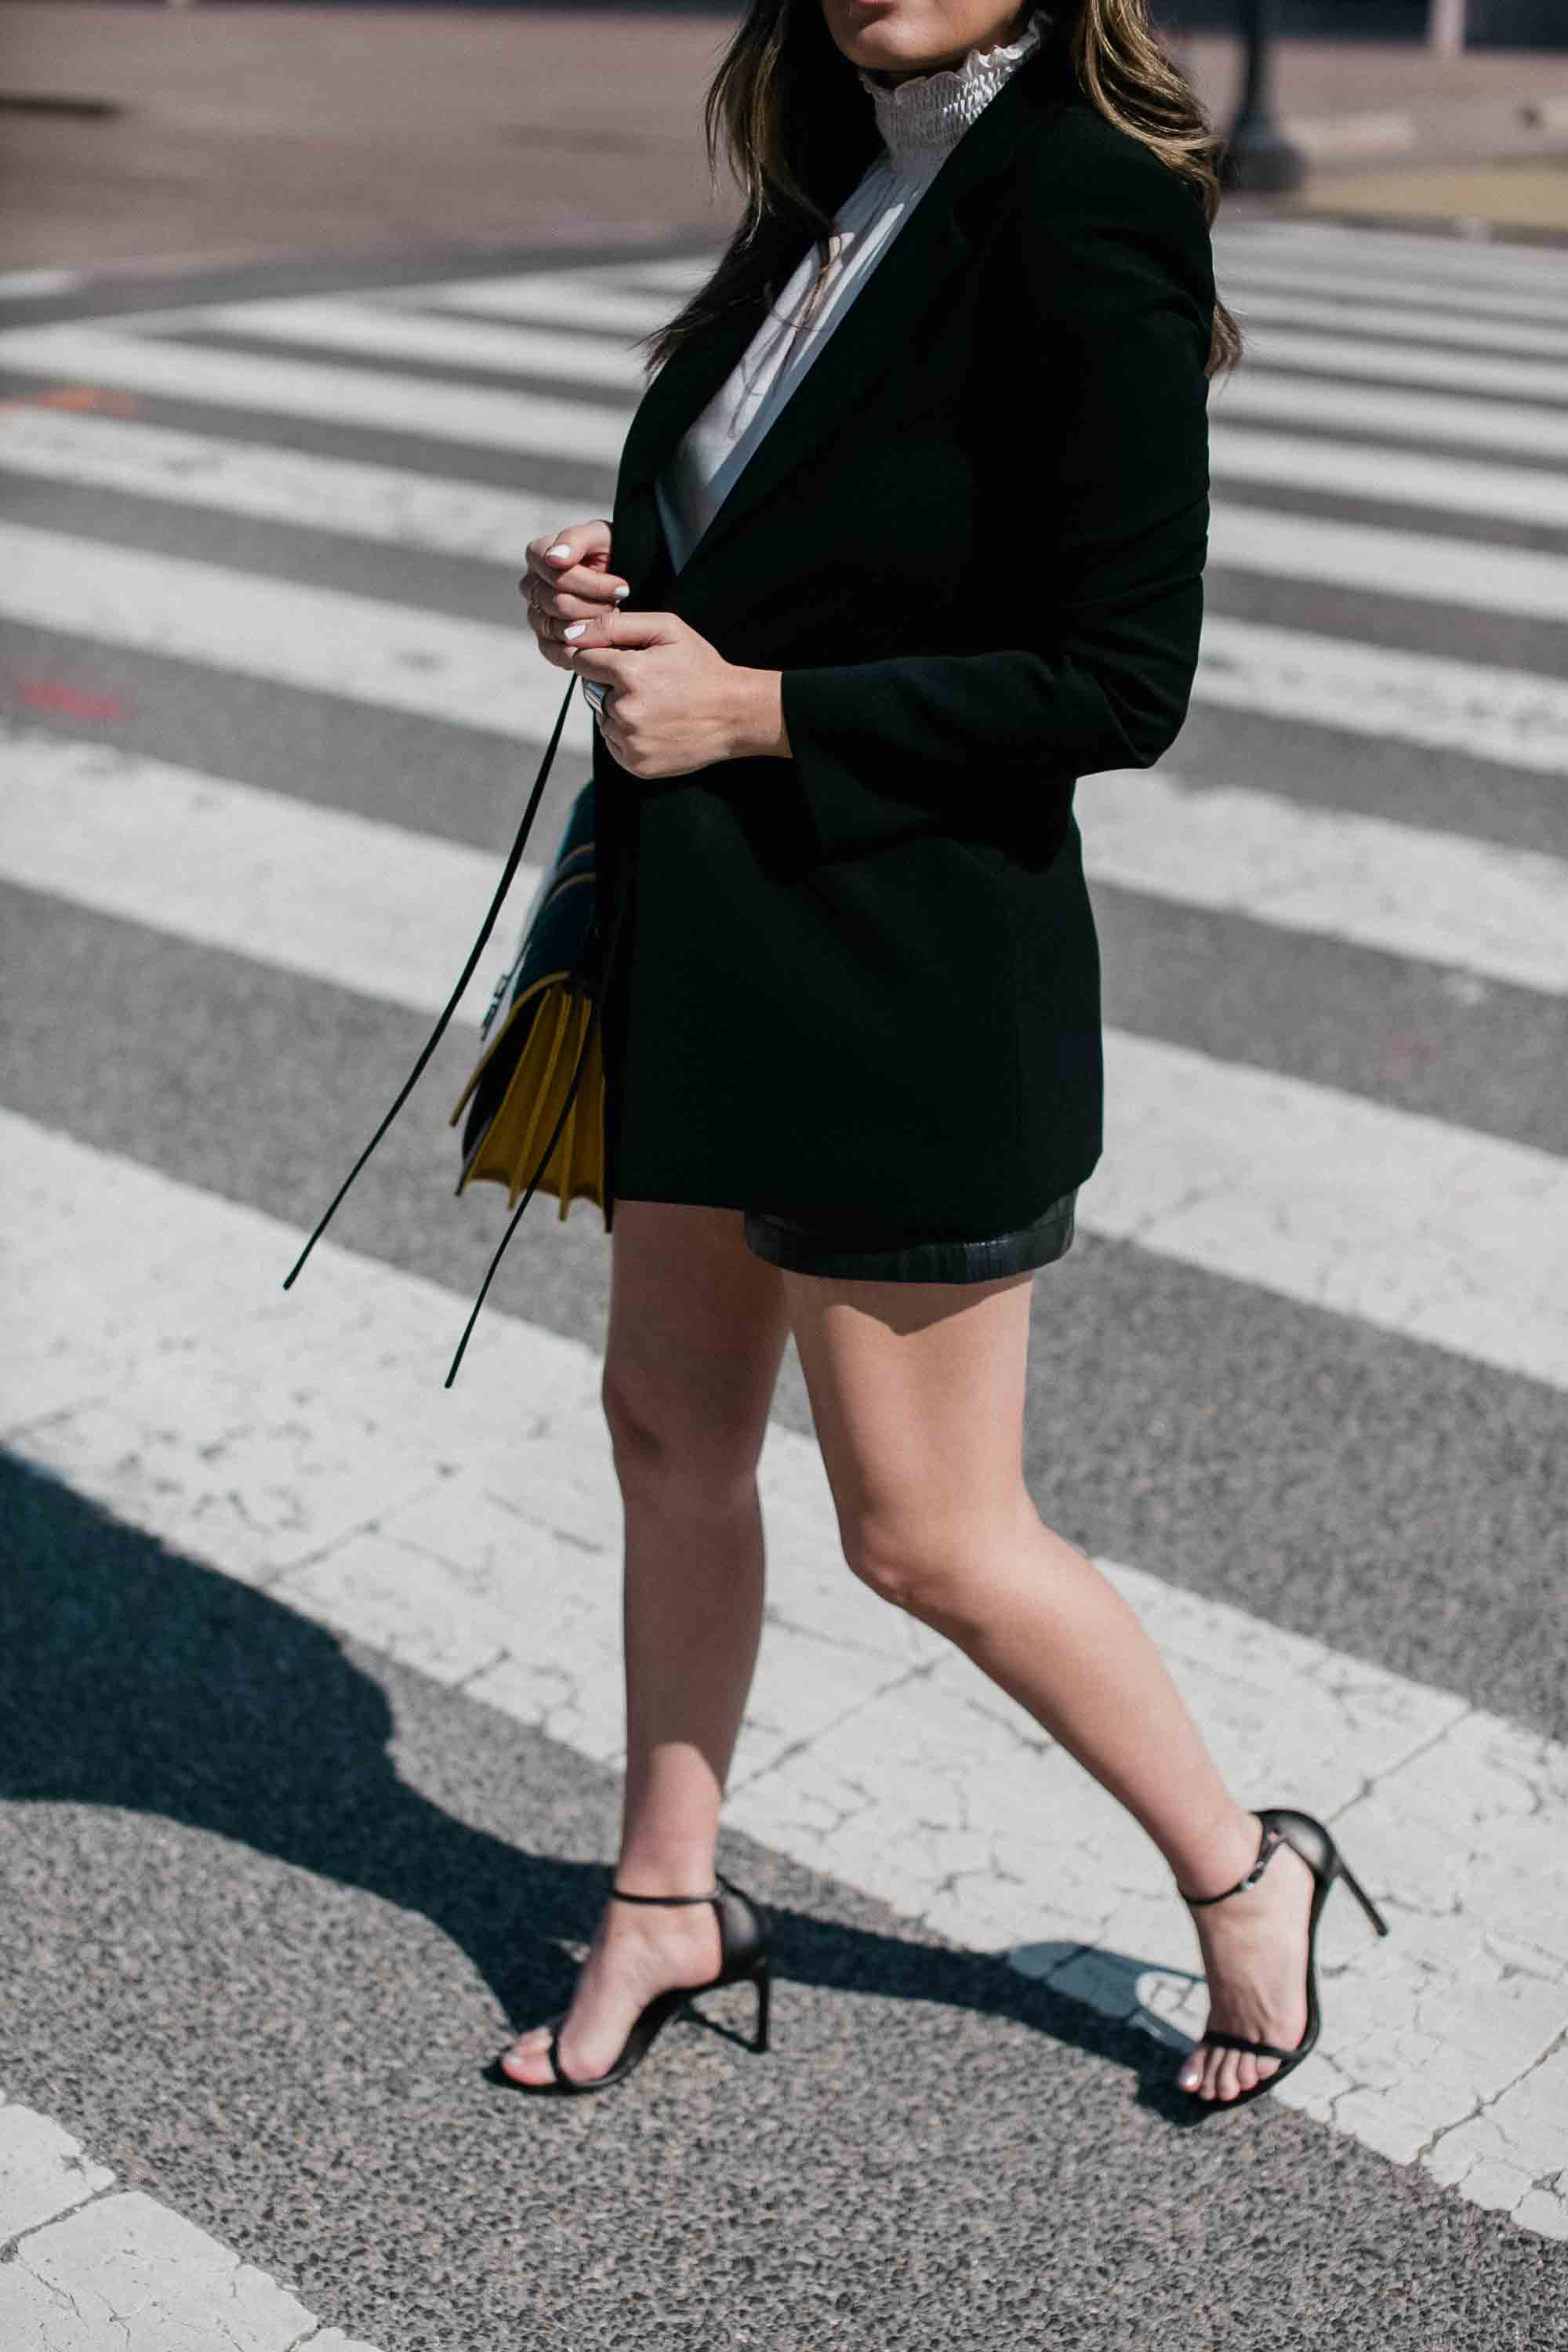 Style-MBA-Wears-Black-Blazer-and-Nude-heels